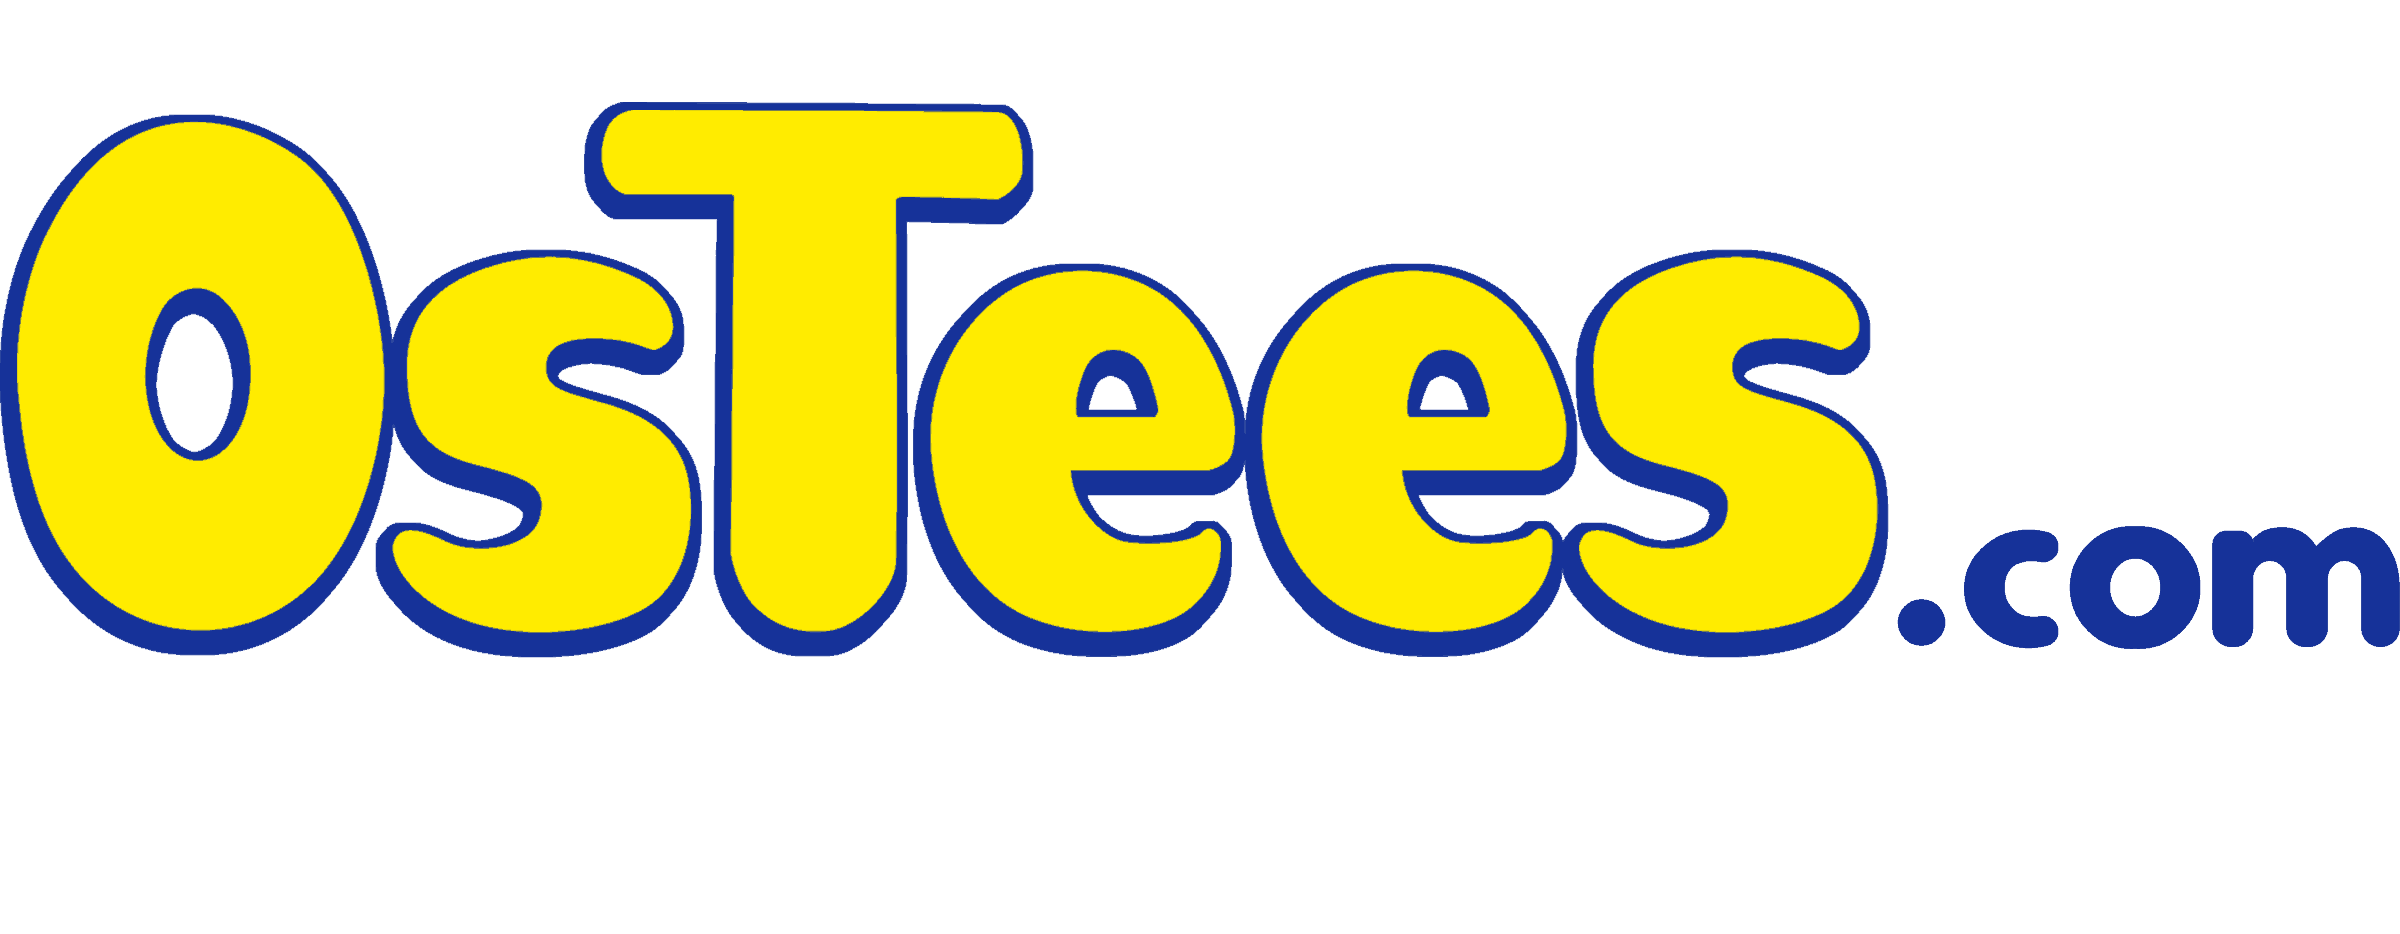 0sTees.com | Funny T-shirt, Movie T-shirt, TV Shirt & Video Game Tees